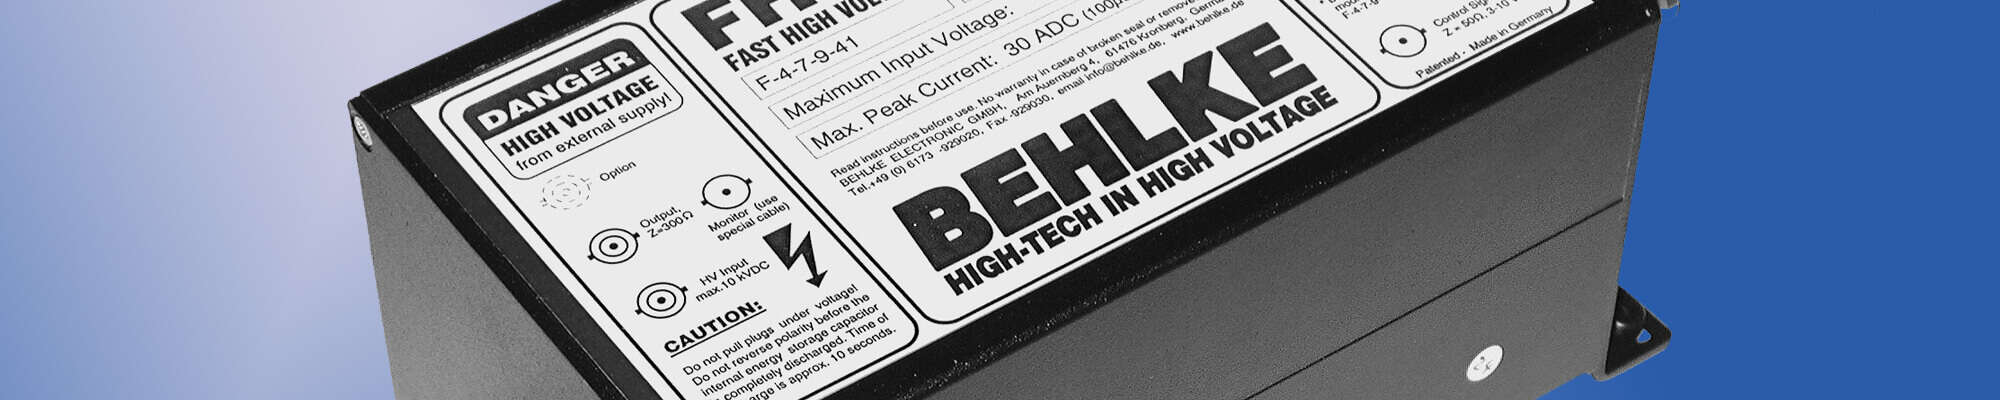 High-Voltage_Behlke1